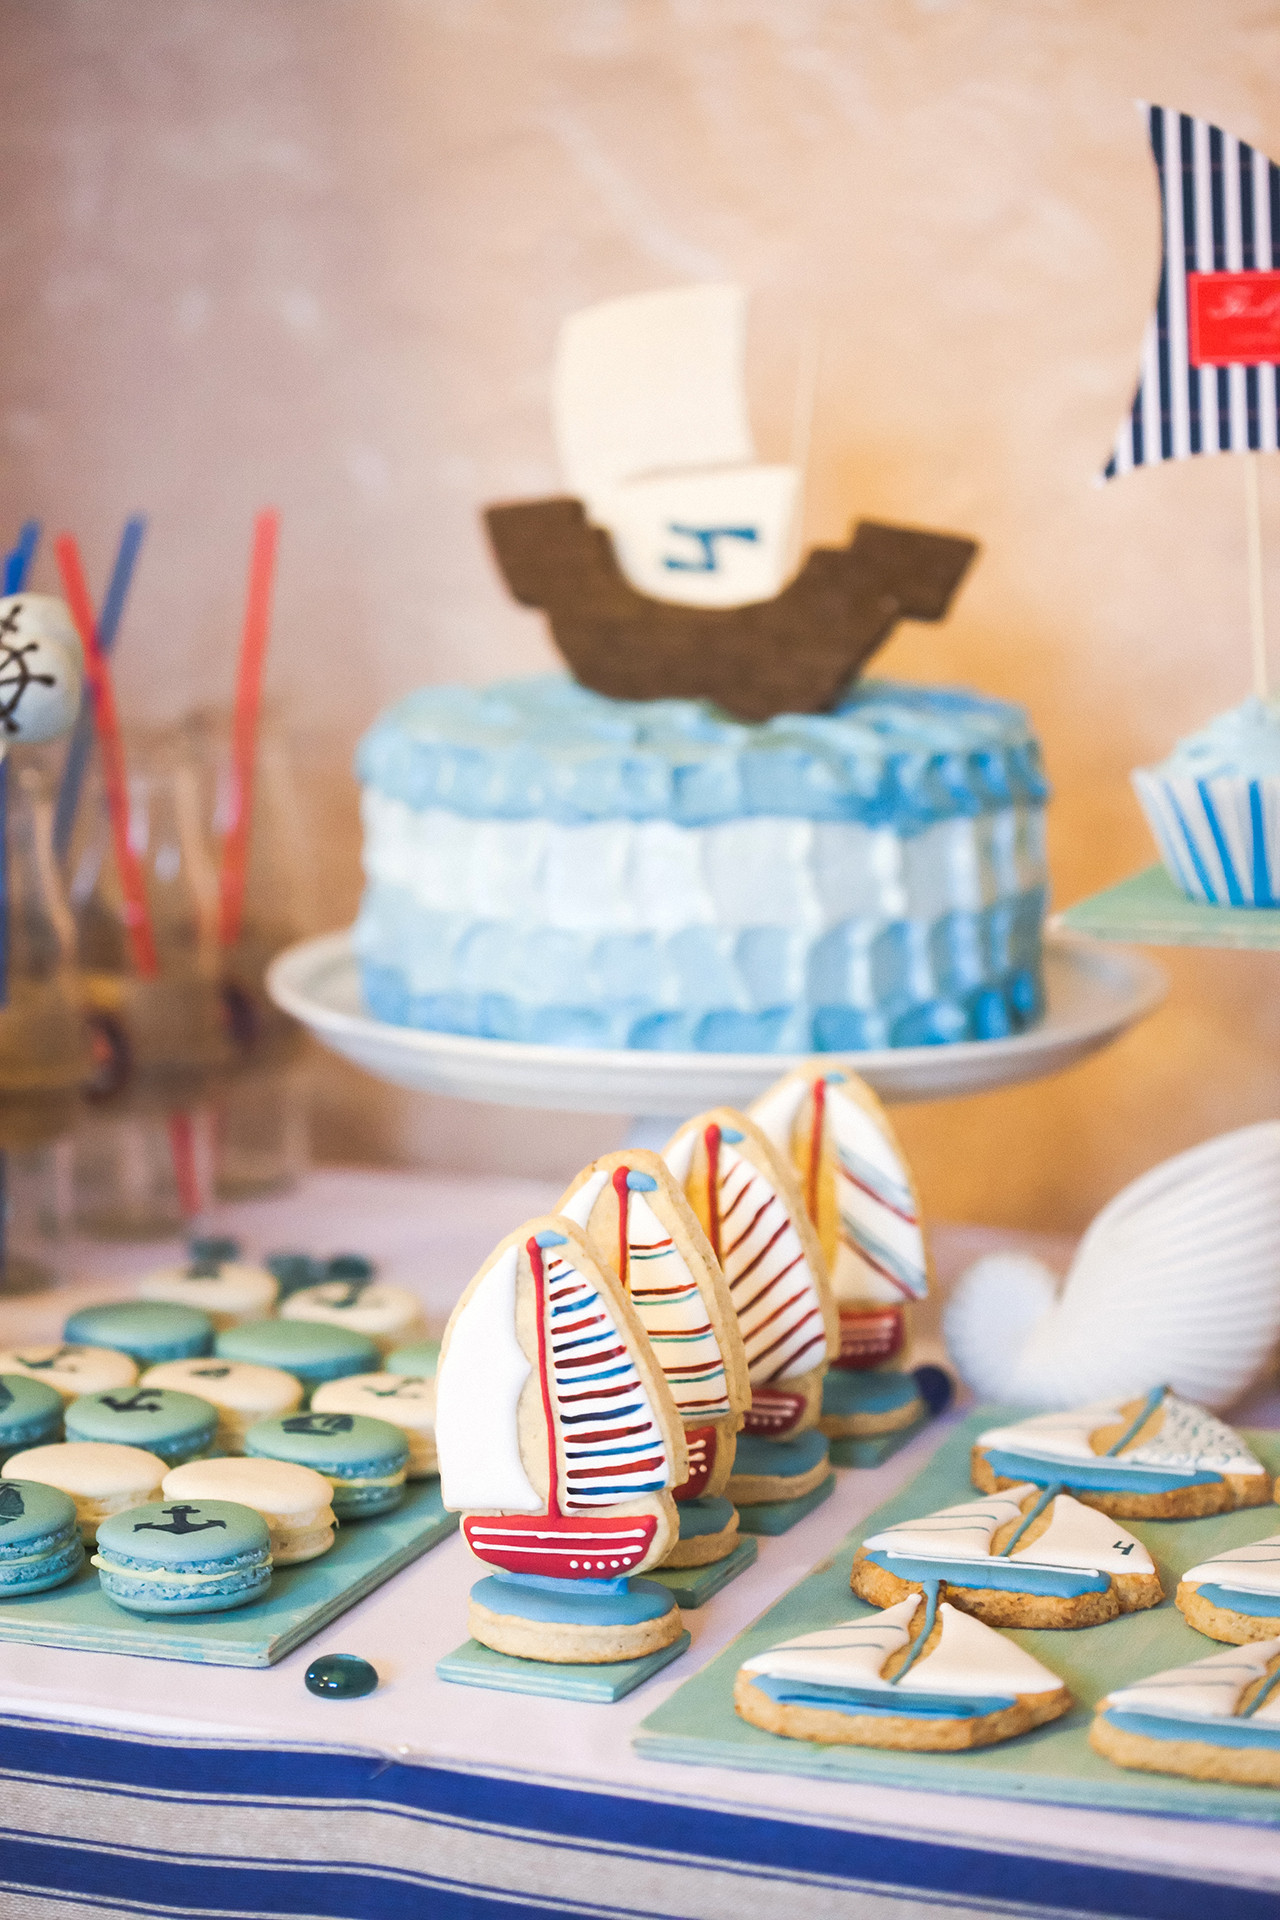 Adult Cake Decorating: Tiered Cakes